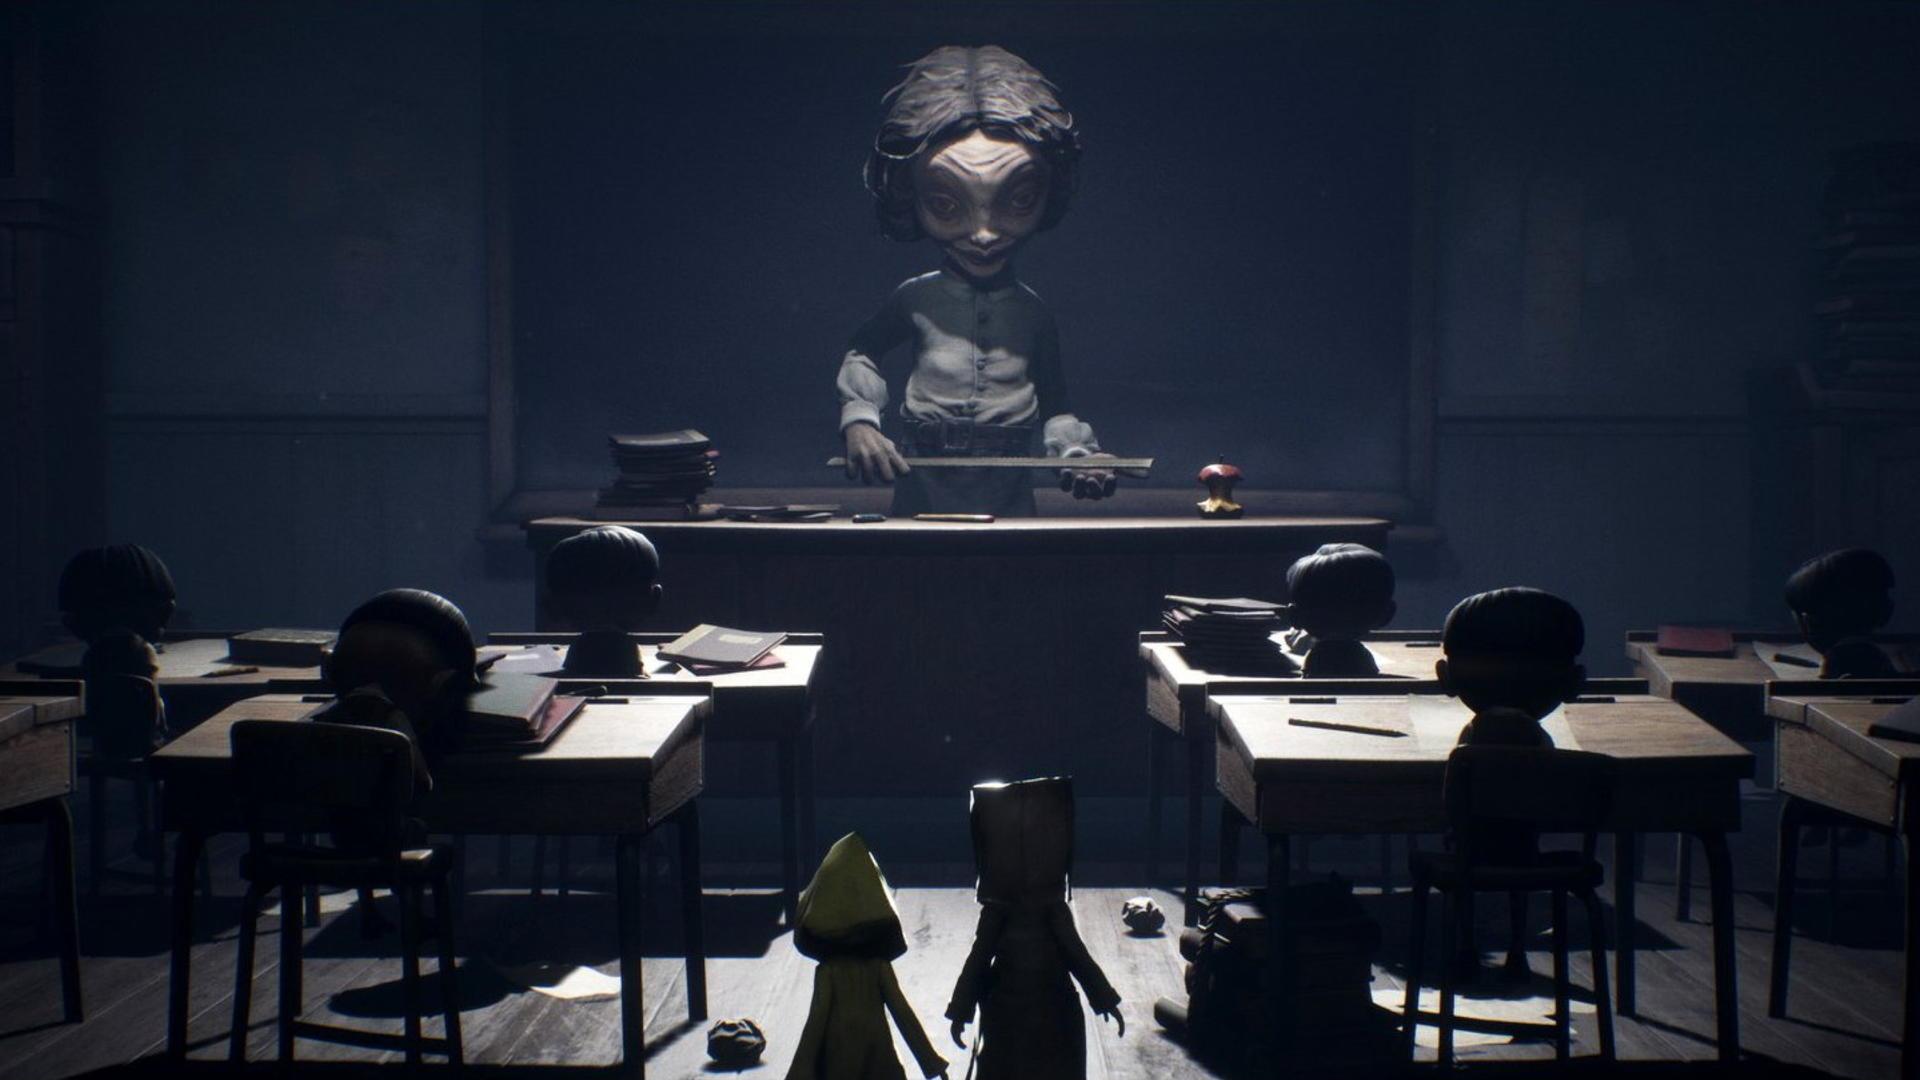 Little Nightmares 2 gameplay debuts an extremely creepy school